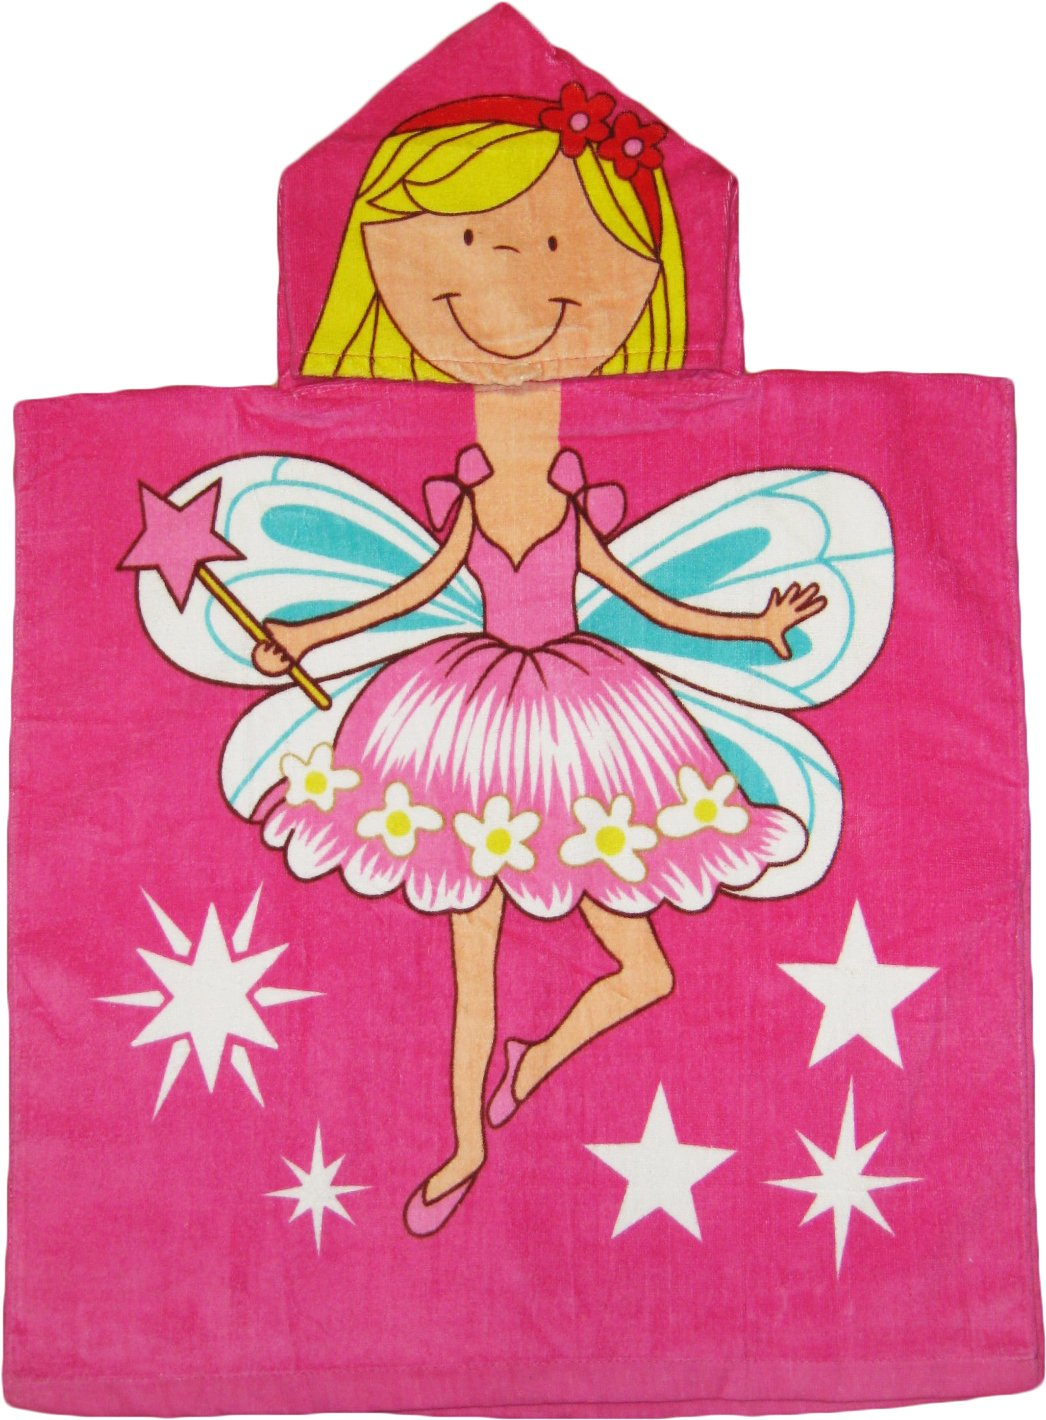 Kreative Kids Fairy 100% Cotton Poncho Style Hooded Bath & Beach Towel with Colorful Double Sized Design